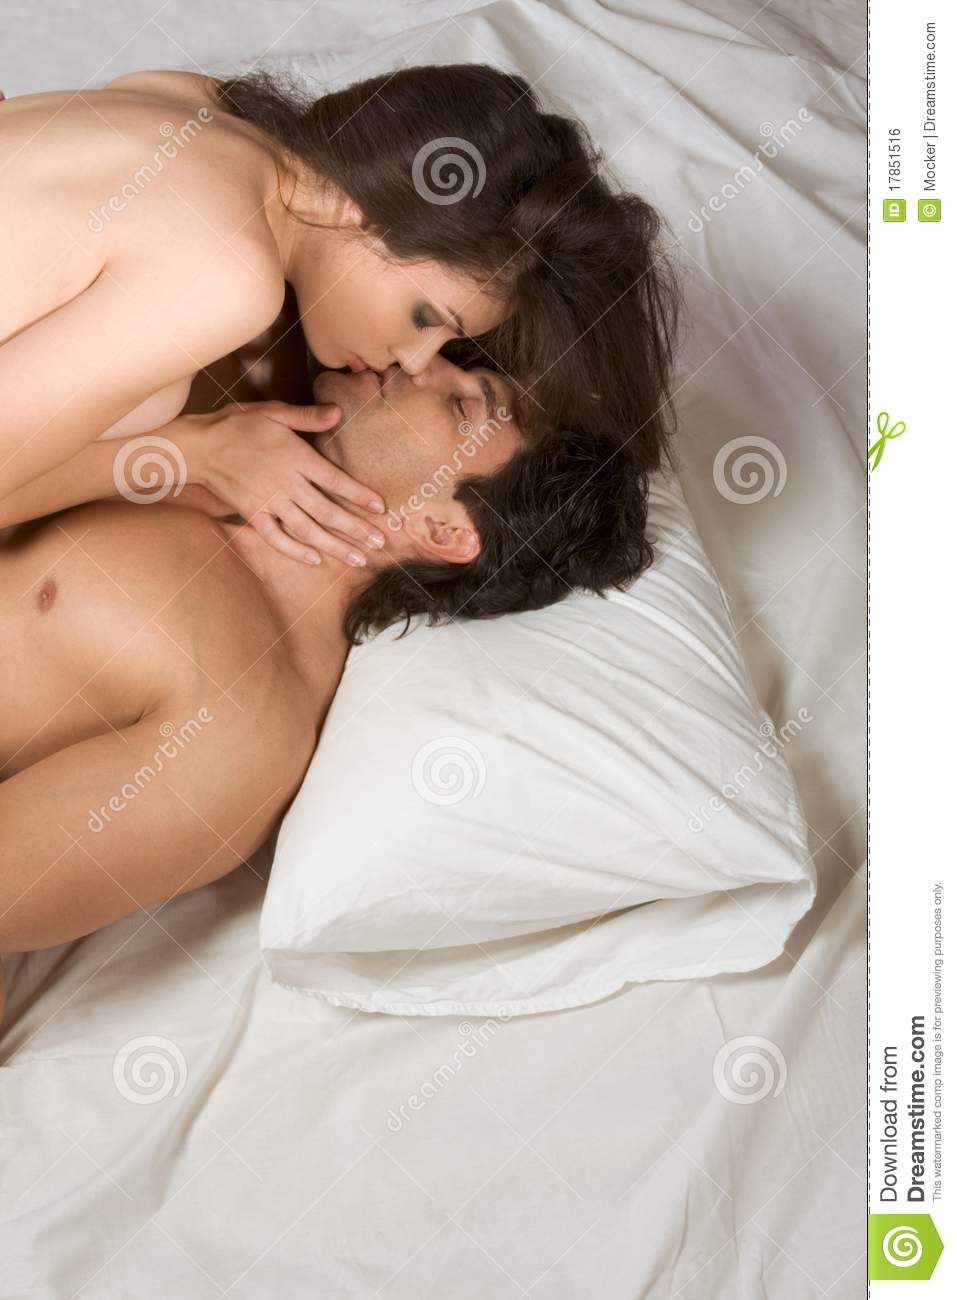 Join told Images of naked women with naked men making love confirm